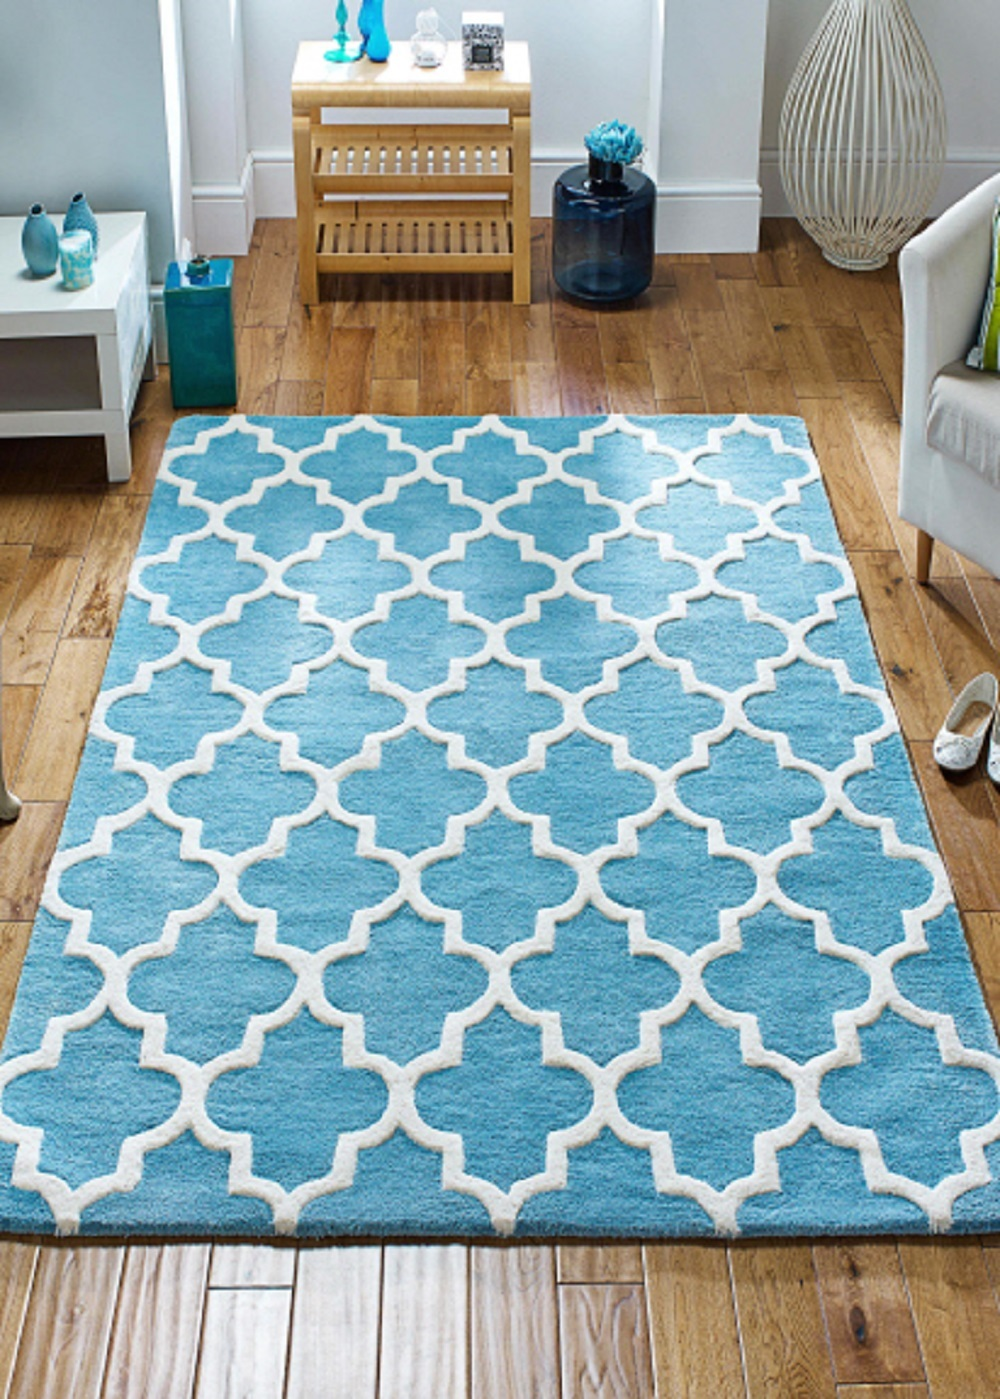 Arabesque_Rug_PurpleCU1.jpg